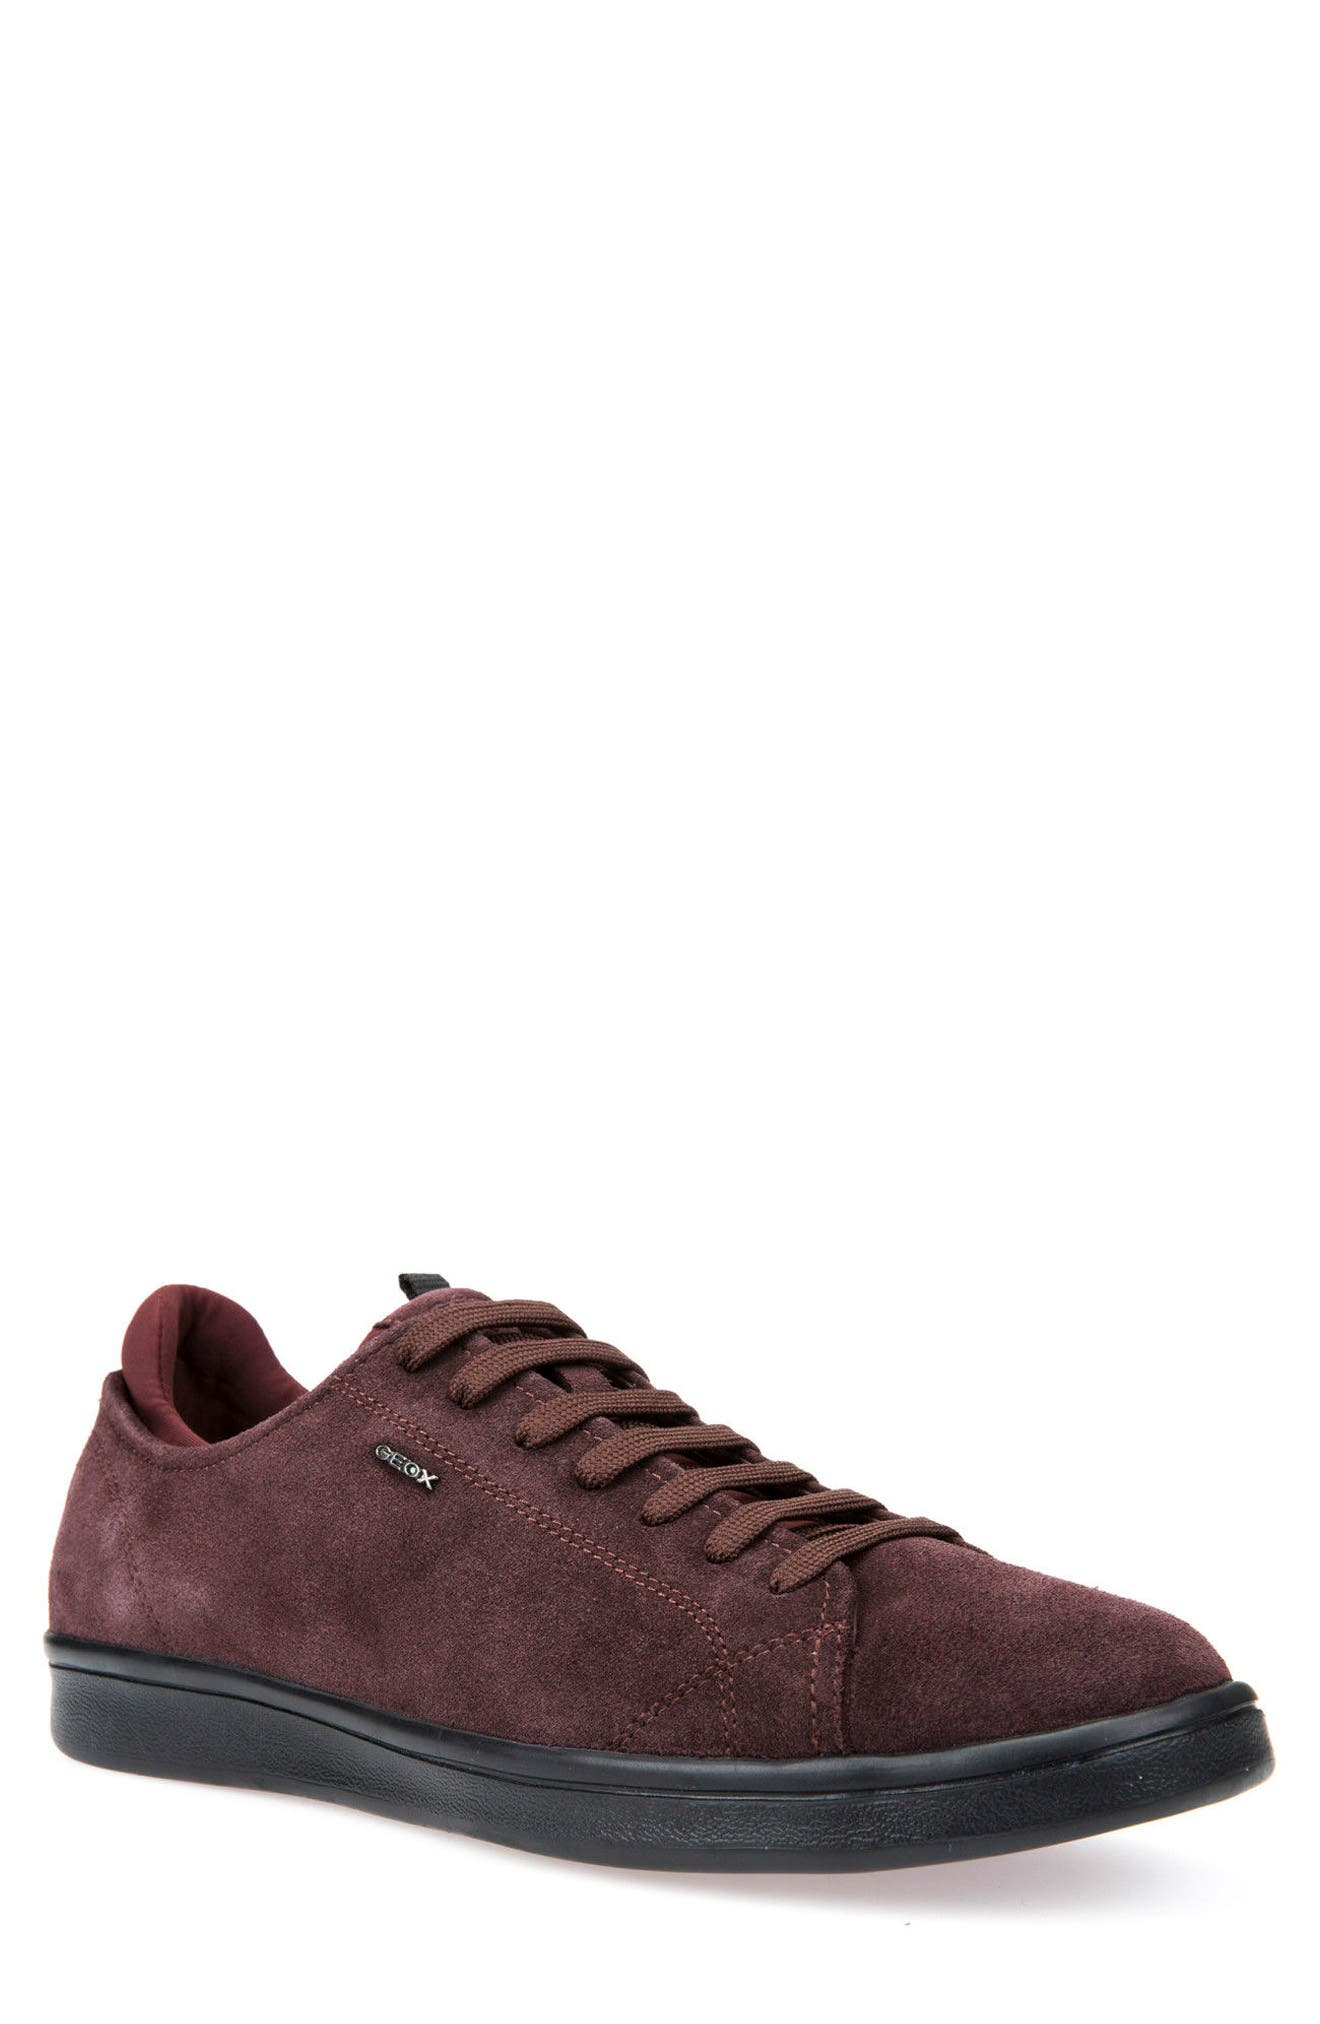 Warrens 8 Low-Top Sneaker,                             Main thumbnail 1, color,                             Bordeaux